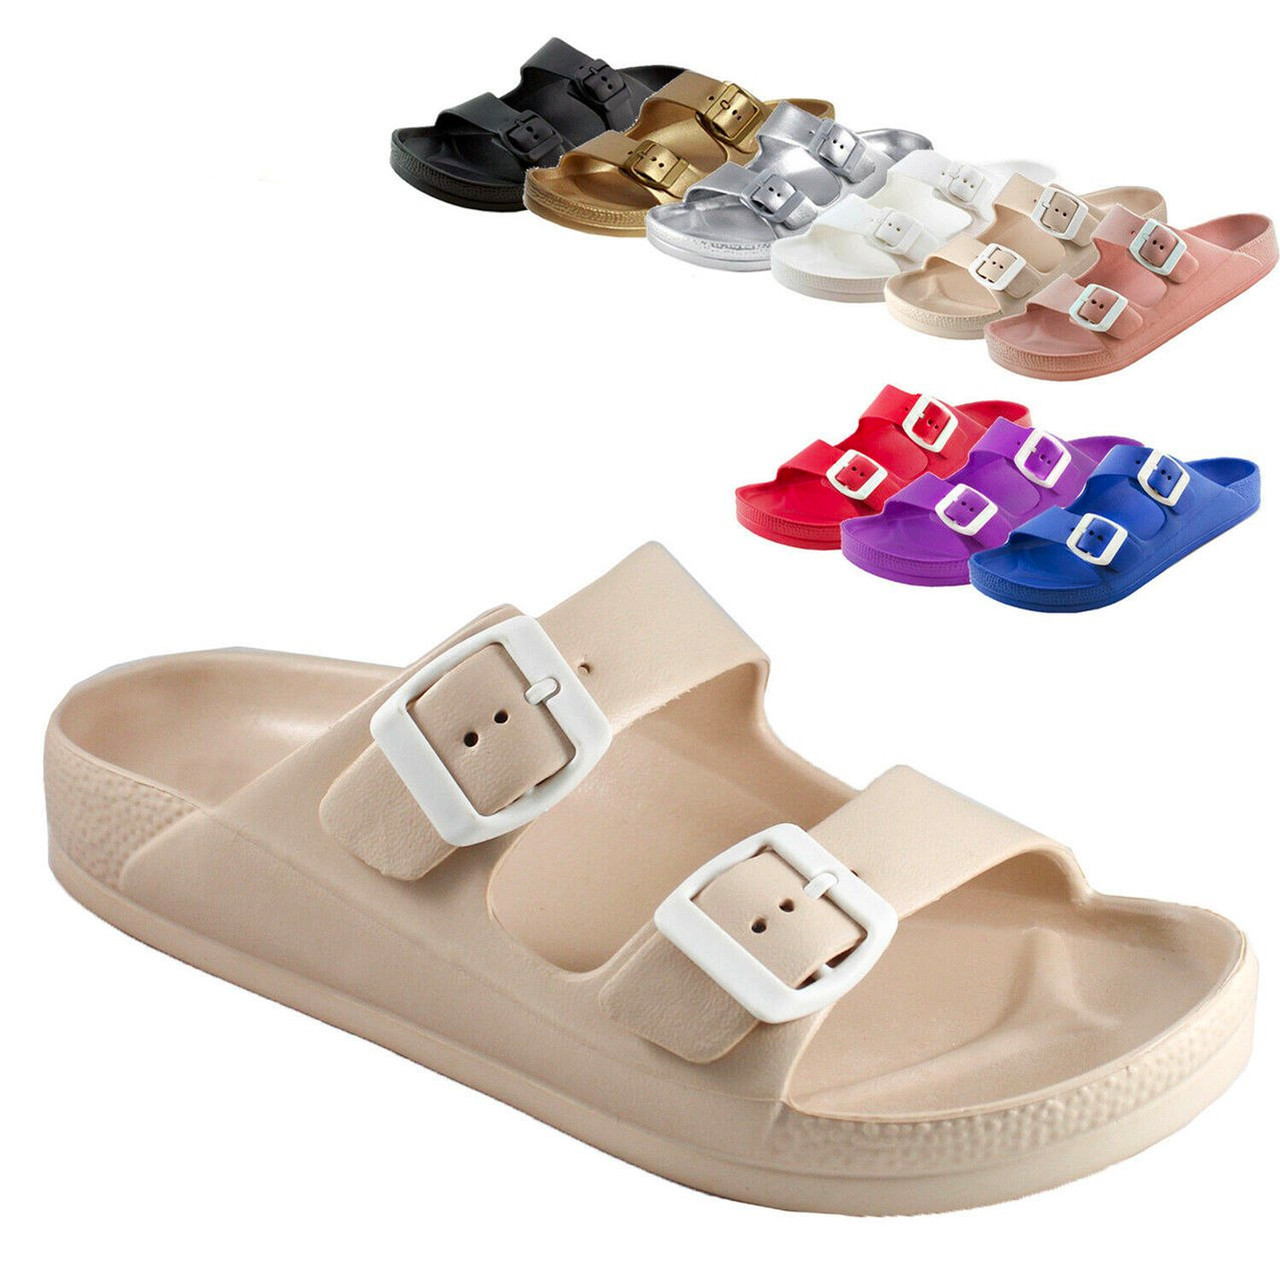 2b610674b Women s Lightweight Comfort Soft Slides EVA Adjustable Double Buckle Flat  Sandals